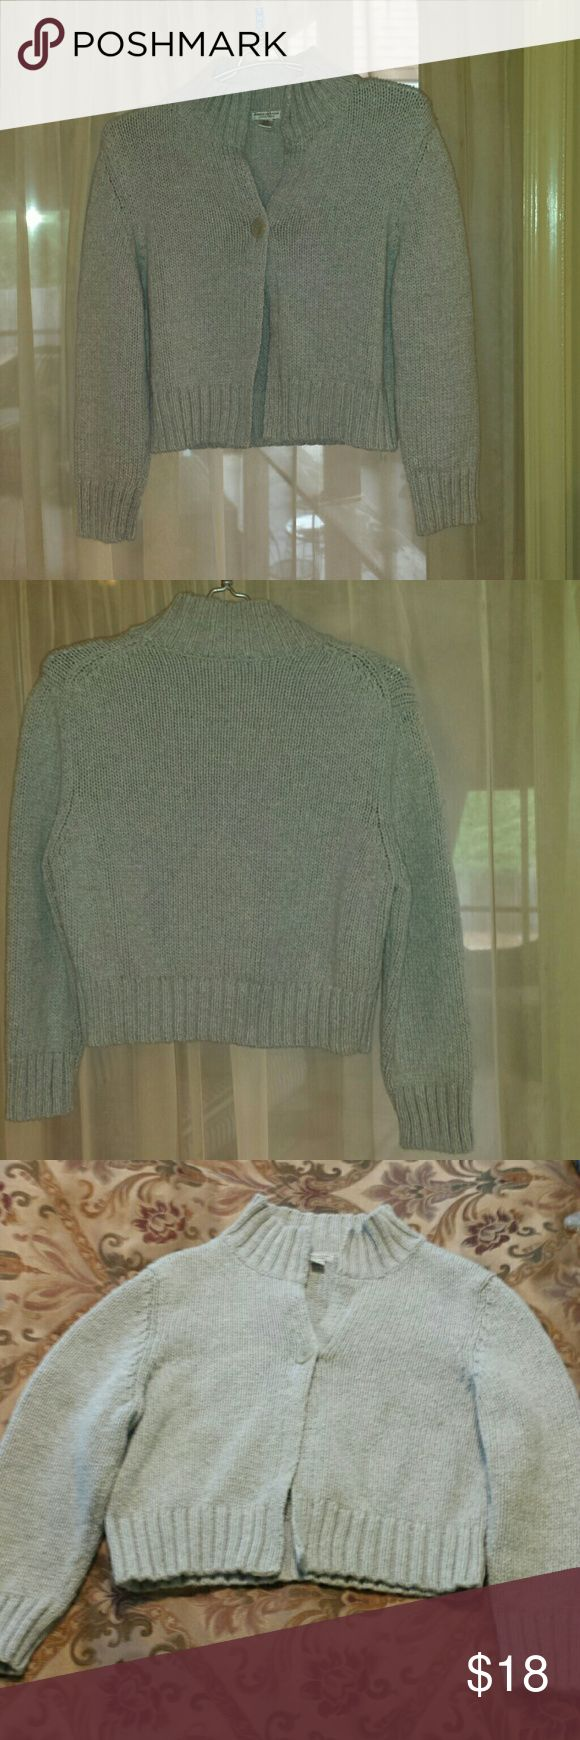 Grey AEO Shrug. Size Medium. Cute 3/4 length grey shrug / bolero by American Eagle Outfitters. Pictures 3 & 4 show true color better than first two pictures. Really cute. Tag says size XL but this sweater shrug is definitely not an XL. It's more like a Medium. Very good used condition. No stains or holes. American Eagle Outfitters Sweaters Shrugs & Ponchos